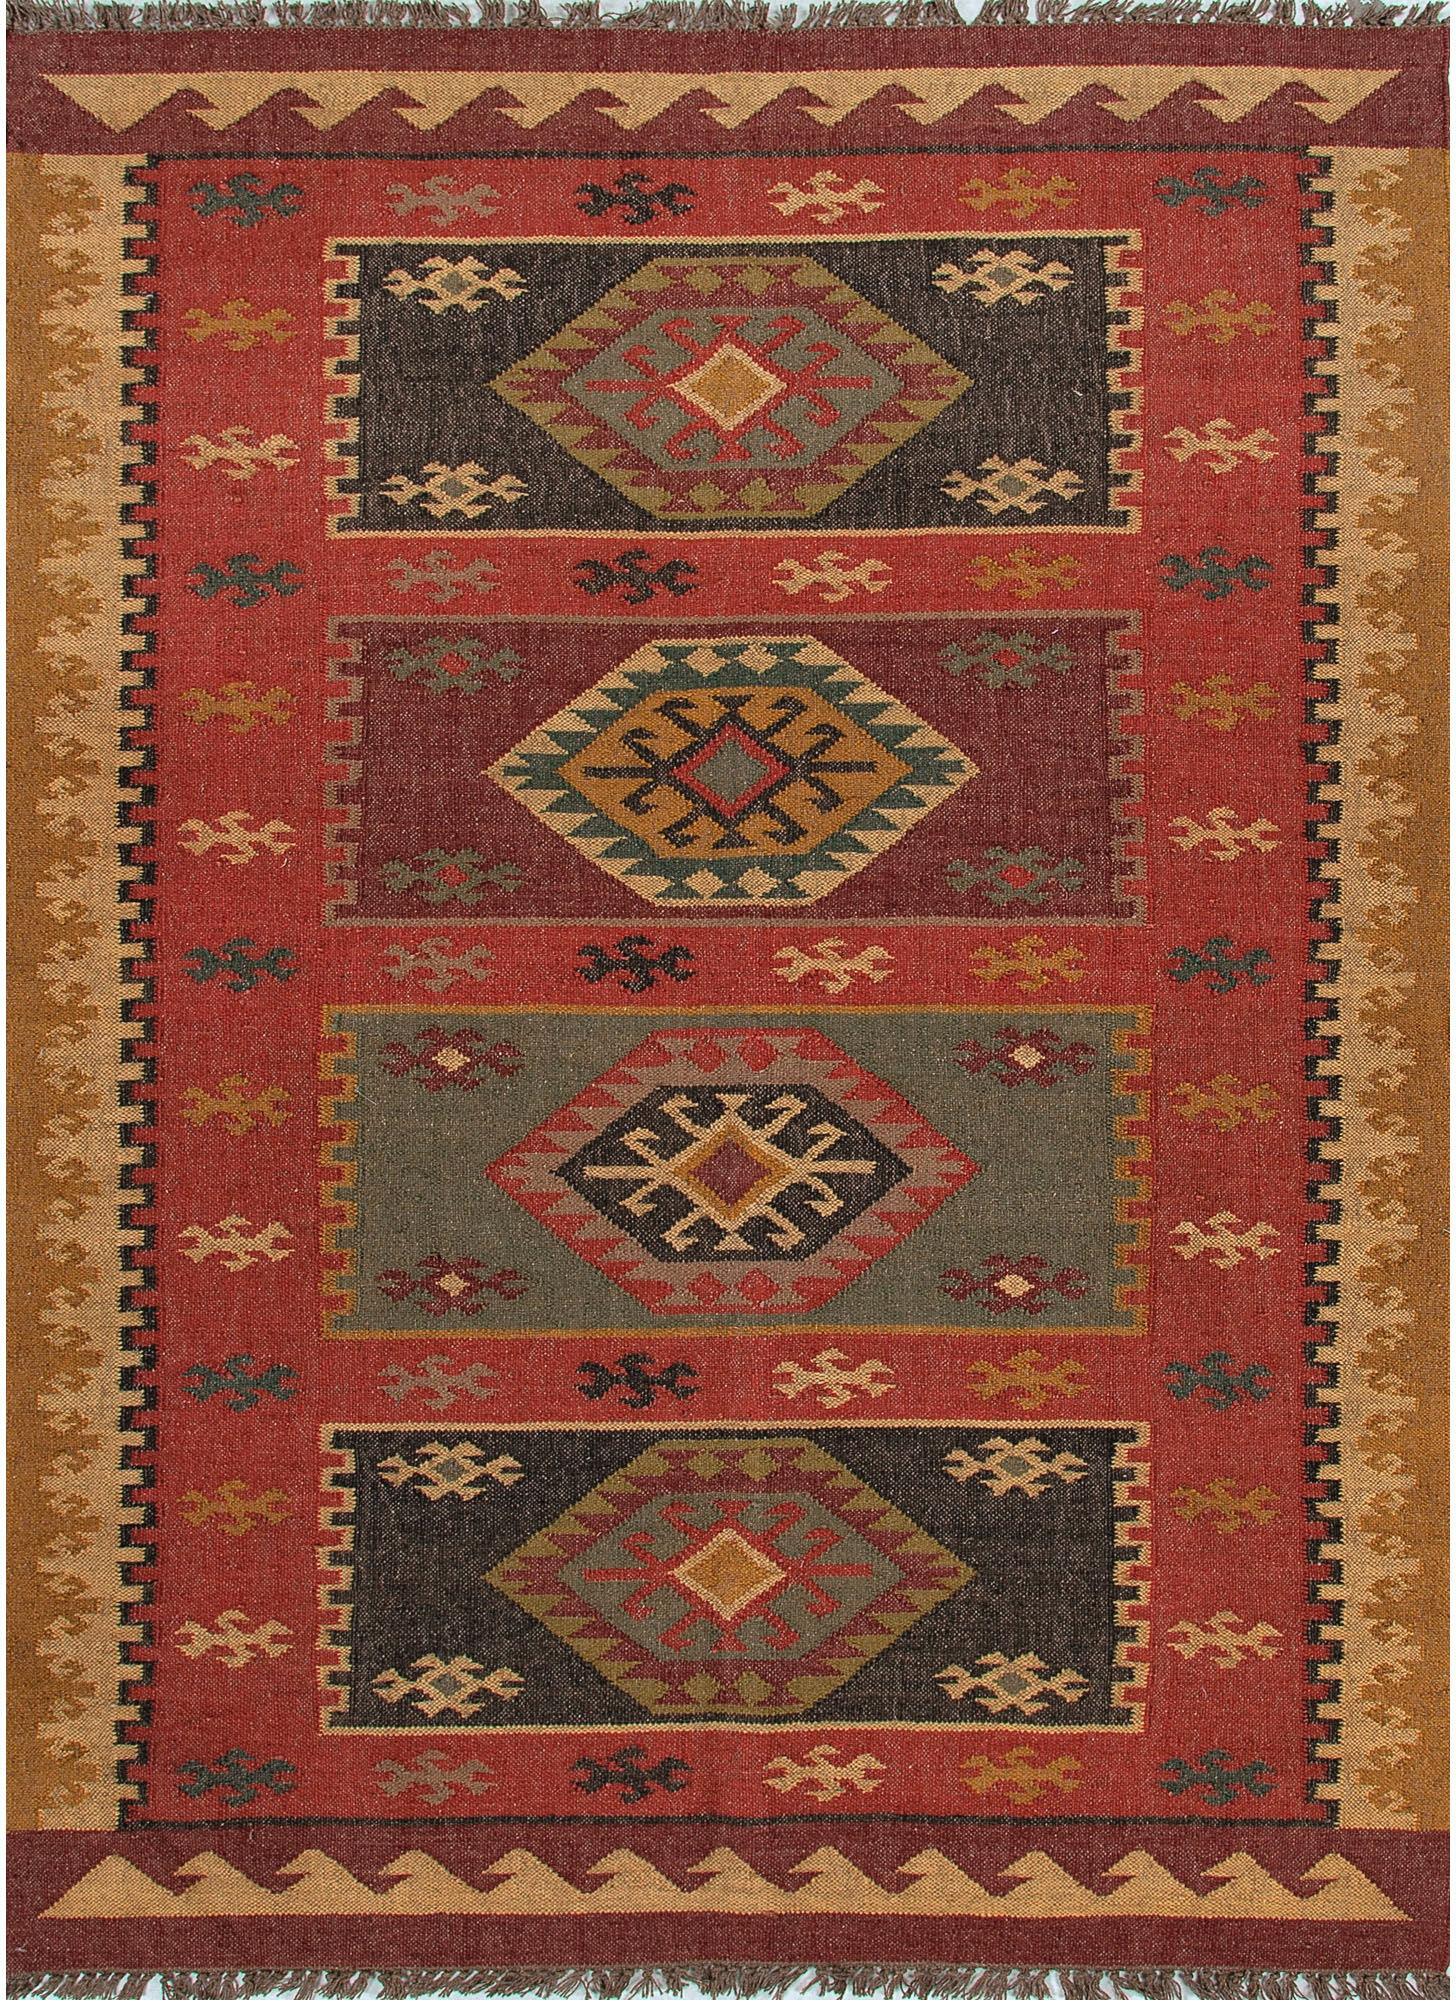 4x6 Flat Woven Kitchen Rug